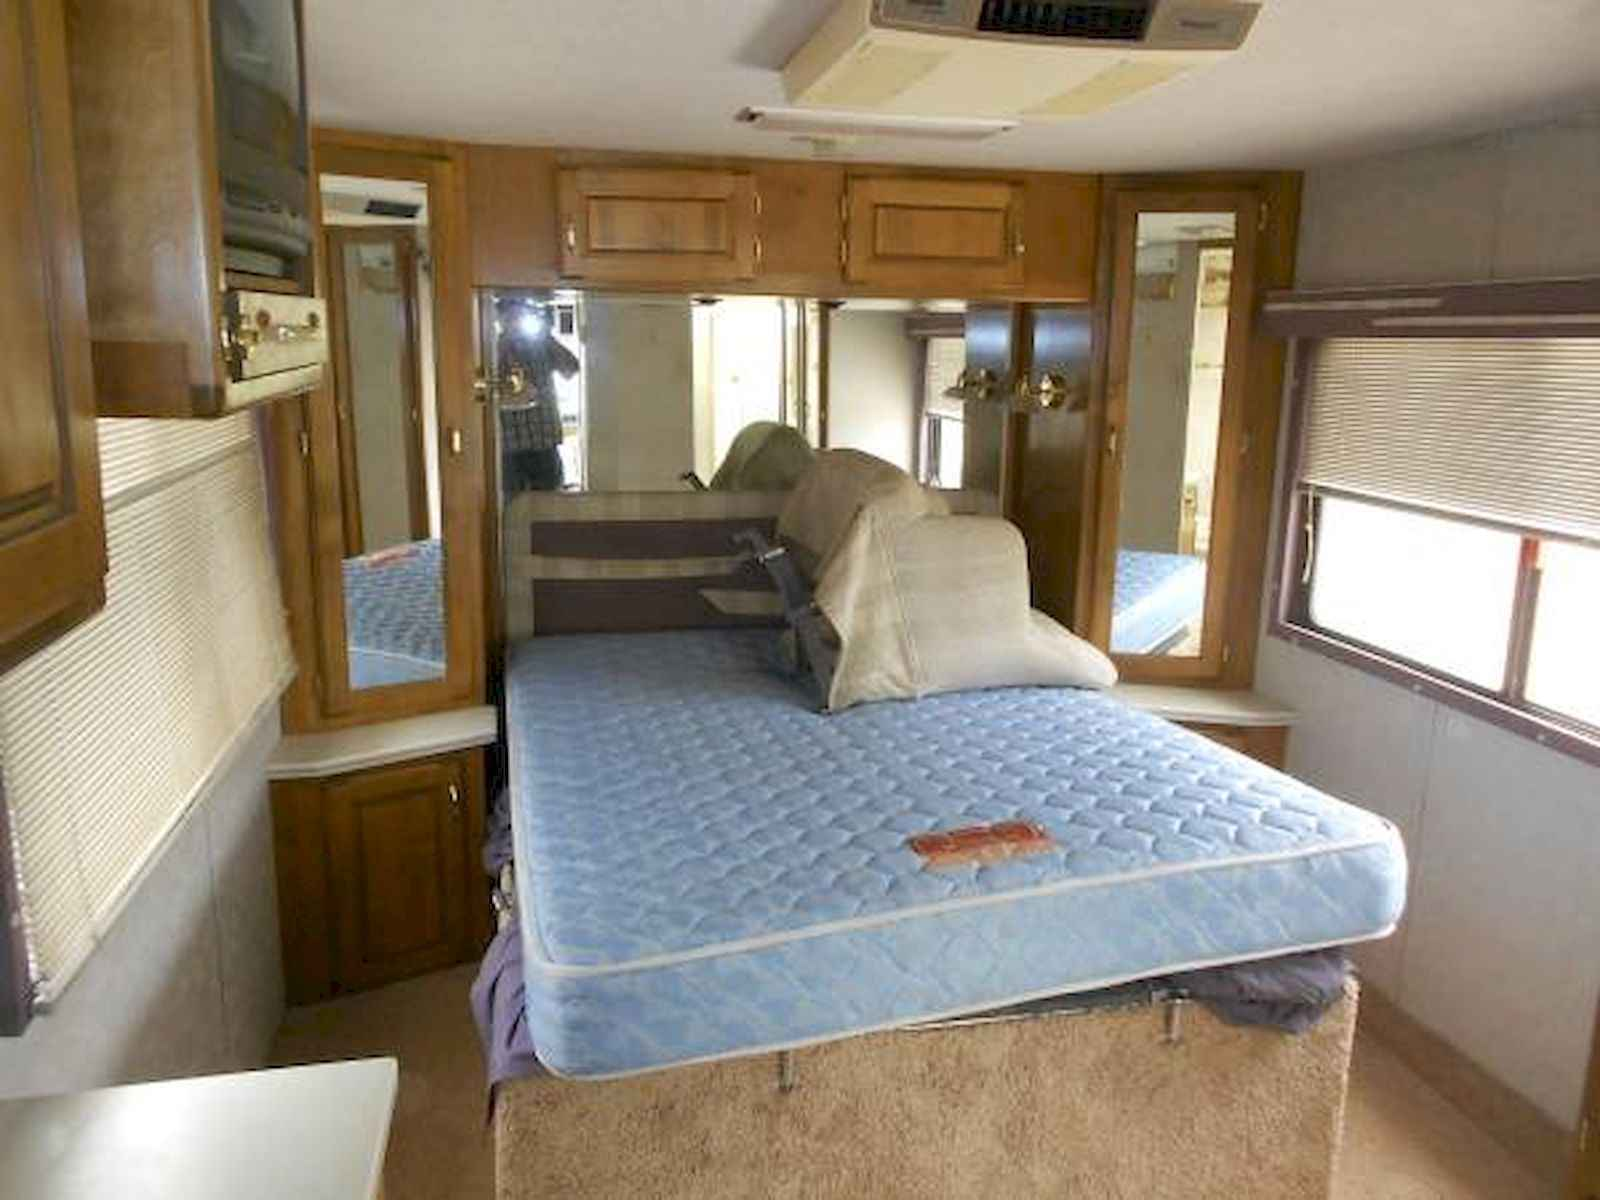 70 Stunning RV Living Camper Room Ideas Decorations Make Your Summer Awesome (64)